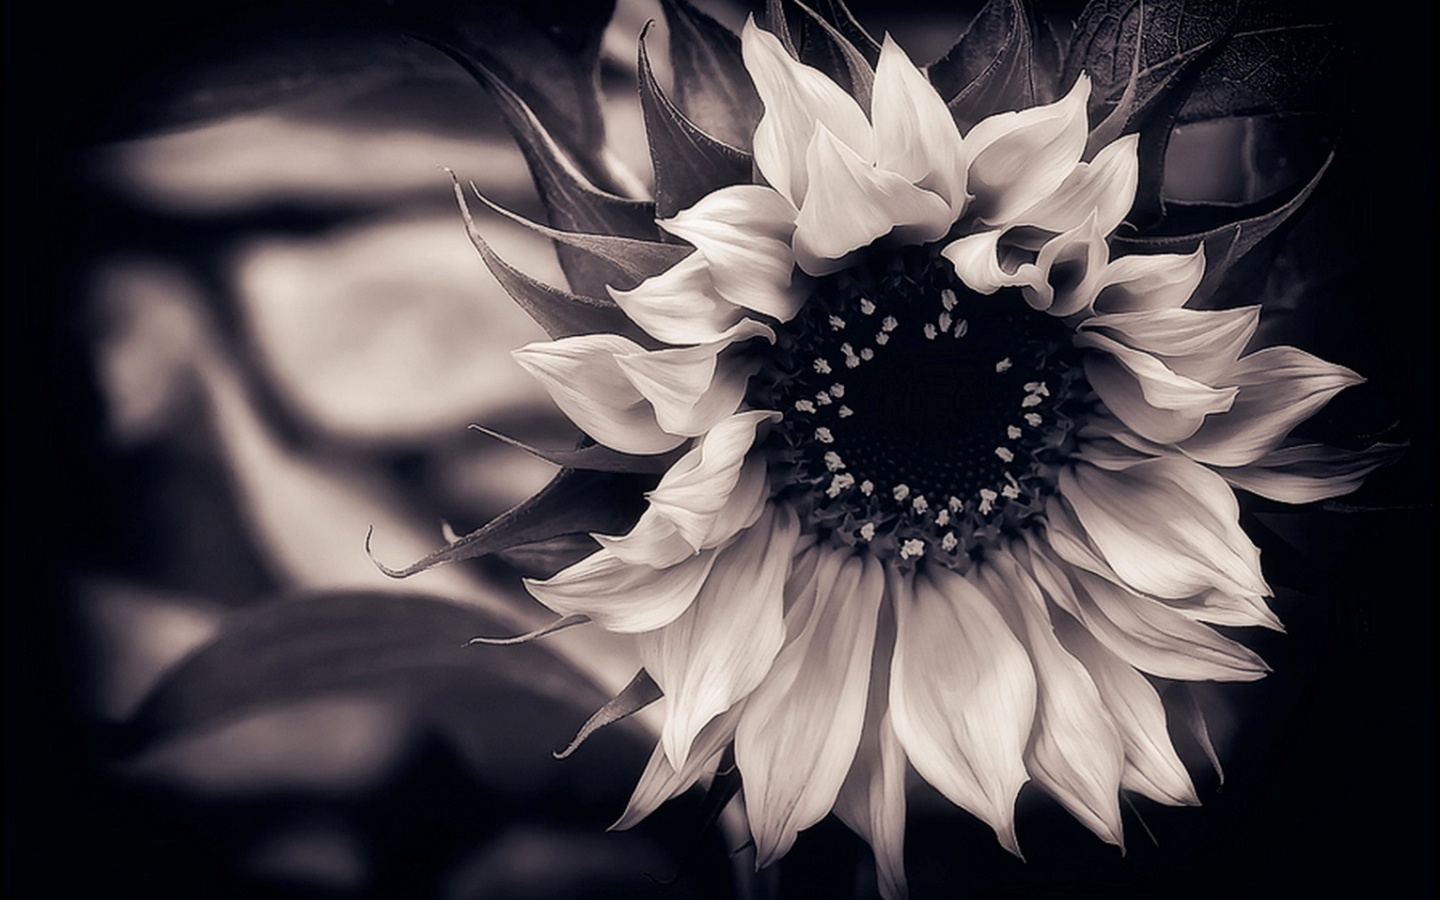 black and white floral wallpaper 16 free hd wallpaper